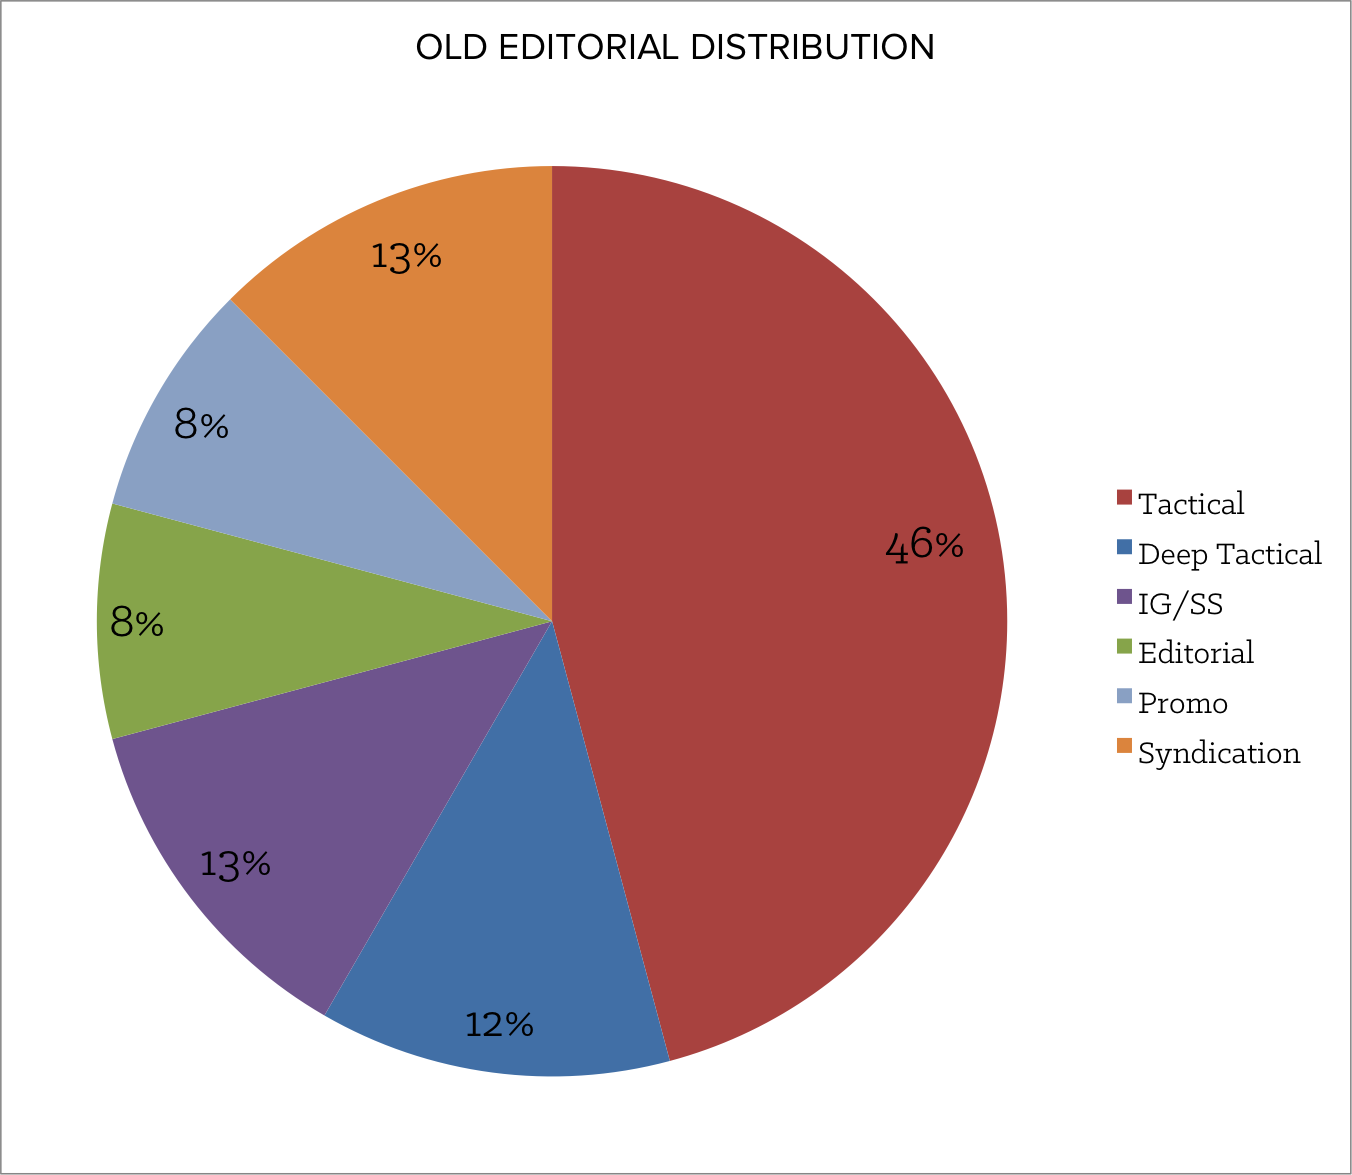 old_editorial_distribution.png